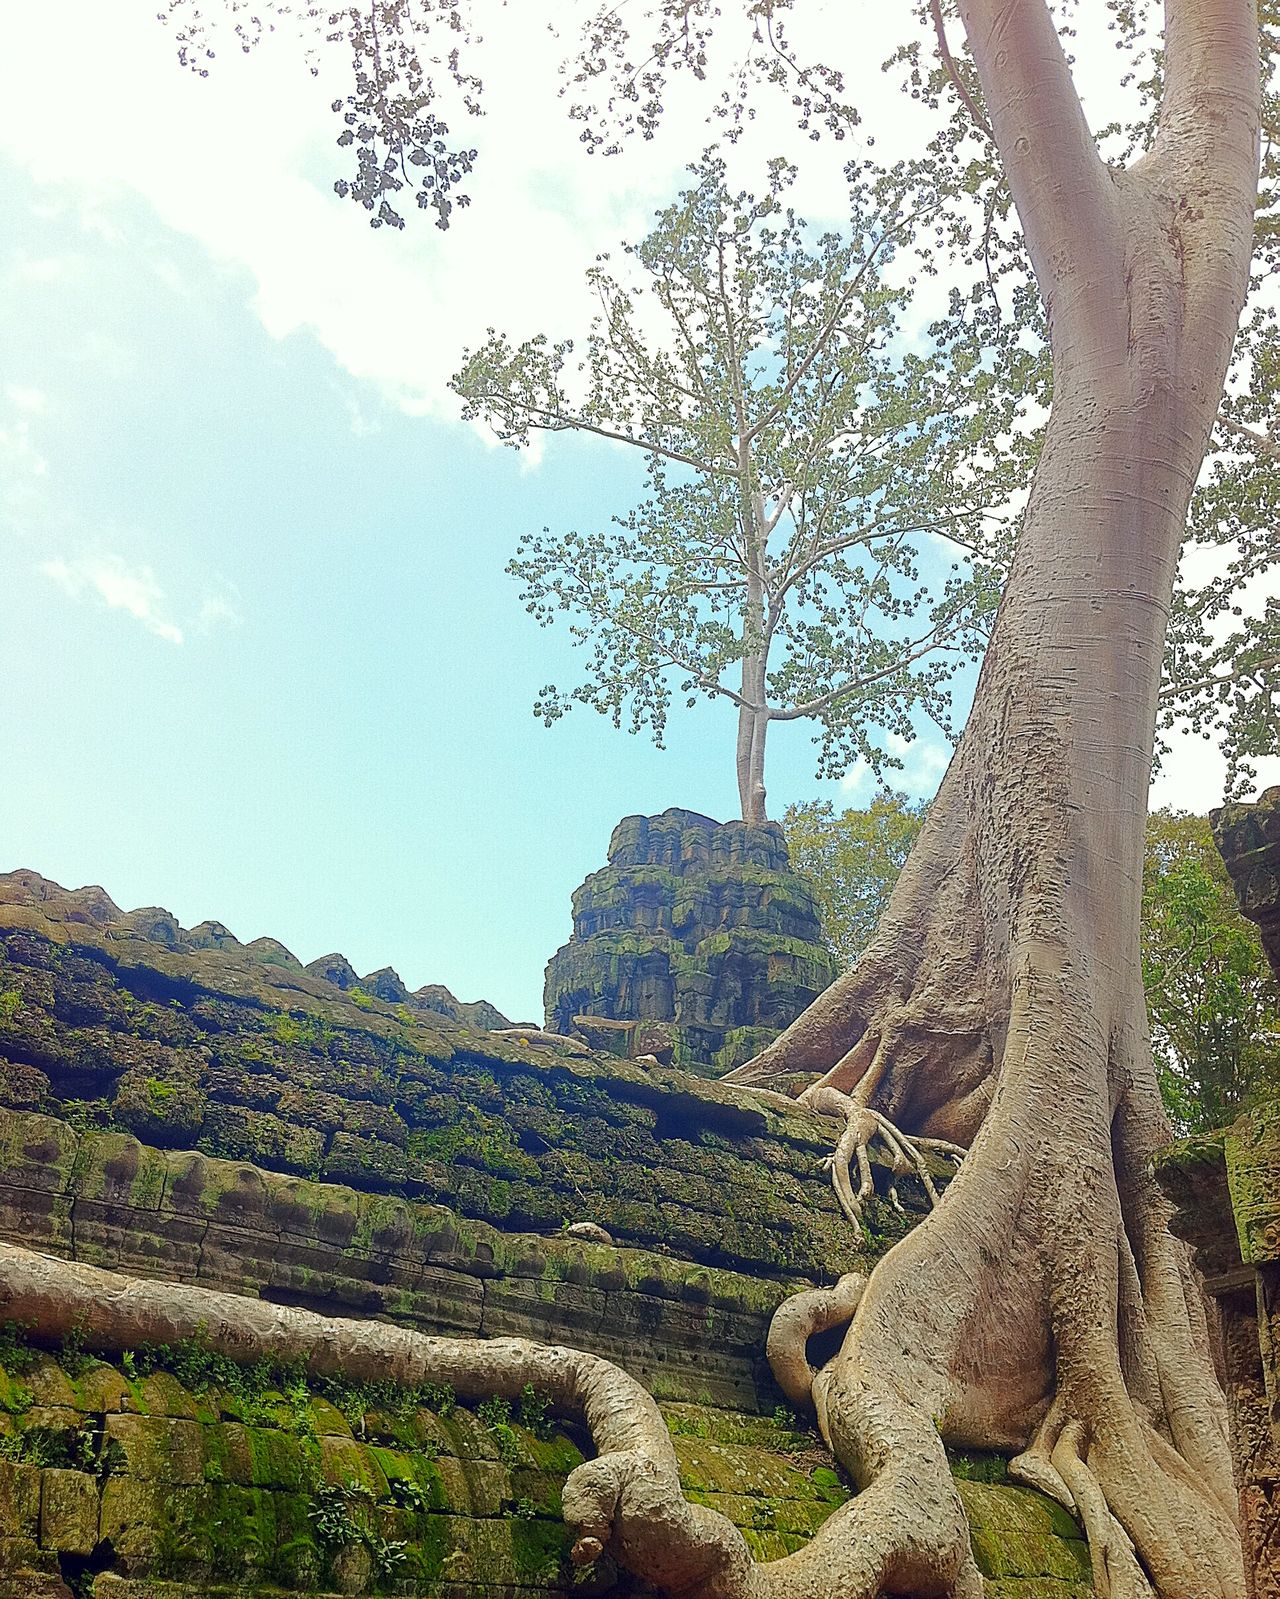 Cambodia, Angkor Thom (2012) Cambodia Angkor Tree Ancient Growth No People Nature Beauty In Nature Agriculture Outdoors Day Sky Scenics Landscape EyeEmNewHere Travel Destinations Tourism Angkor Thom Hello World History EyeEmNewHere